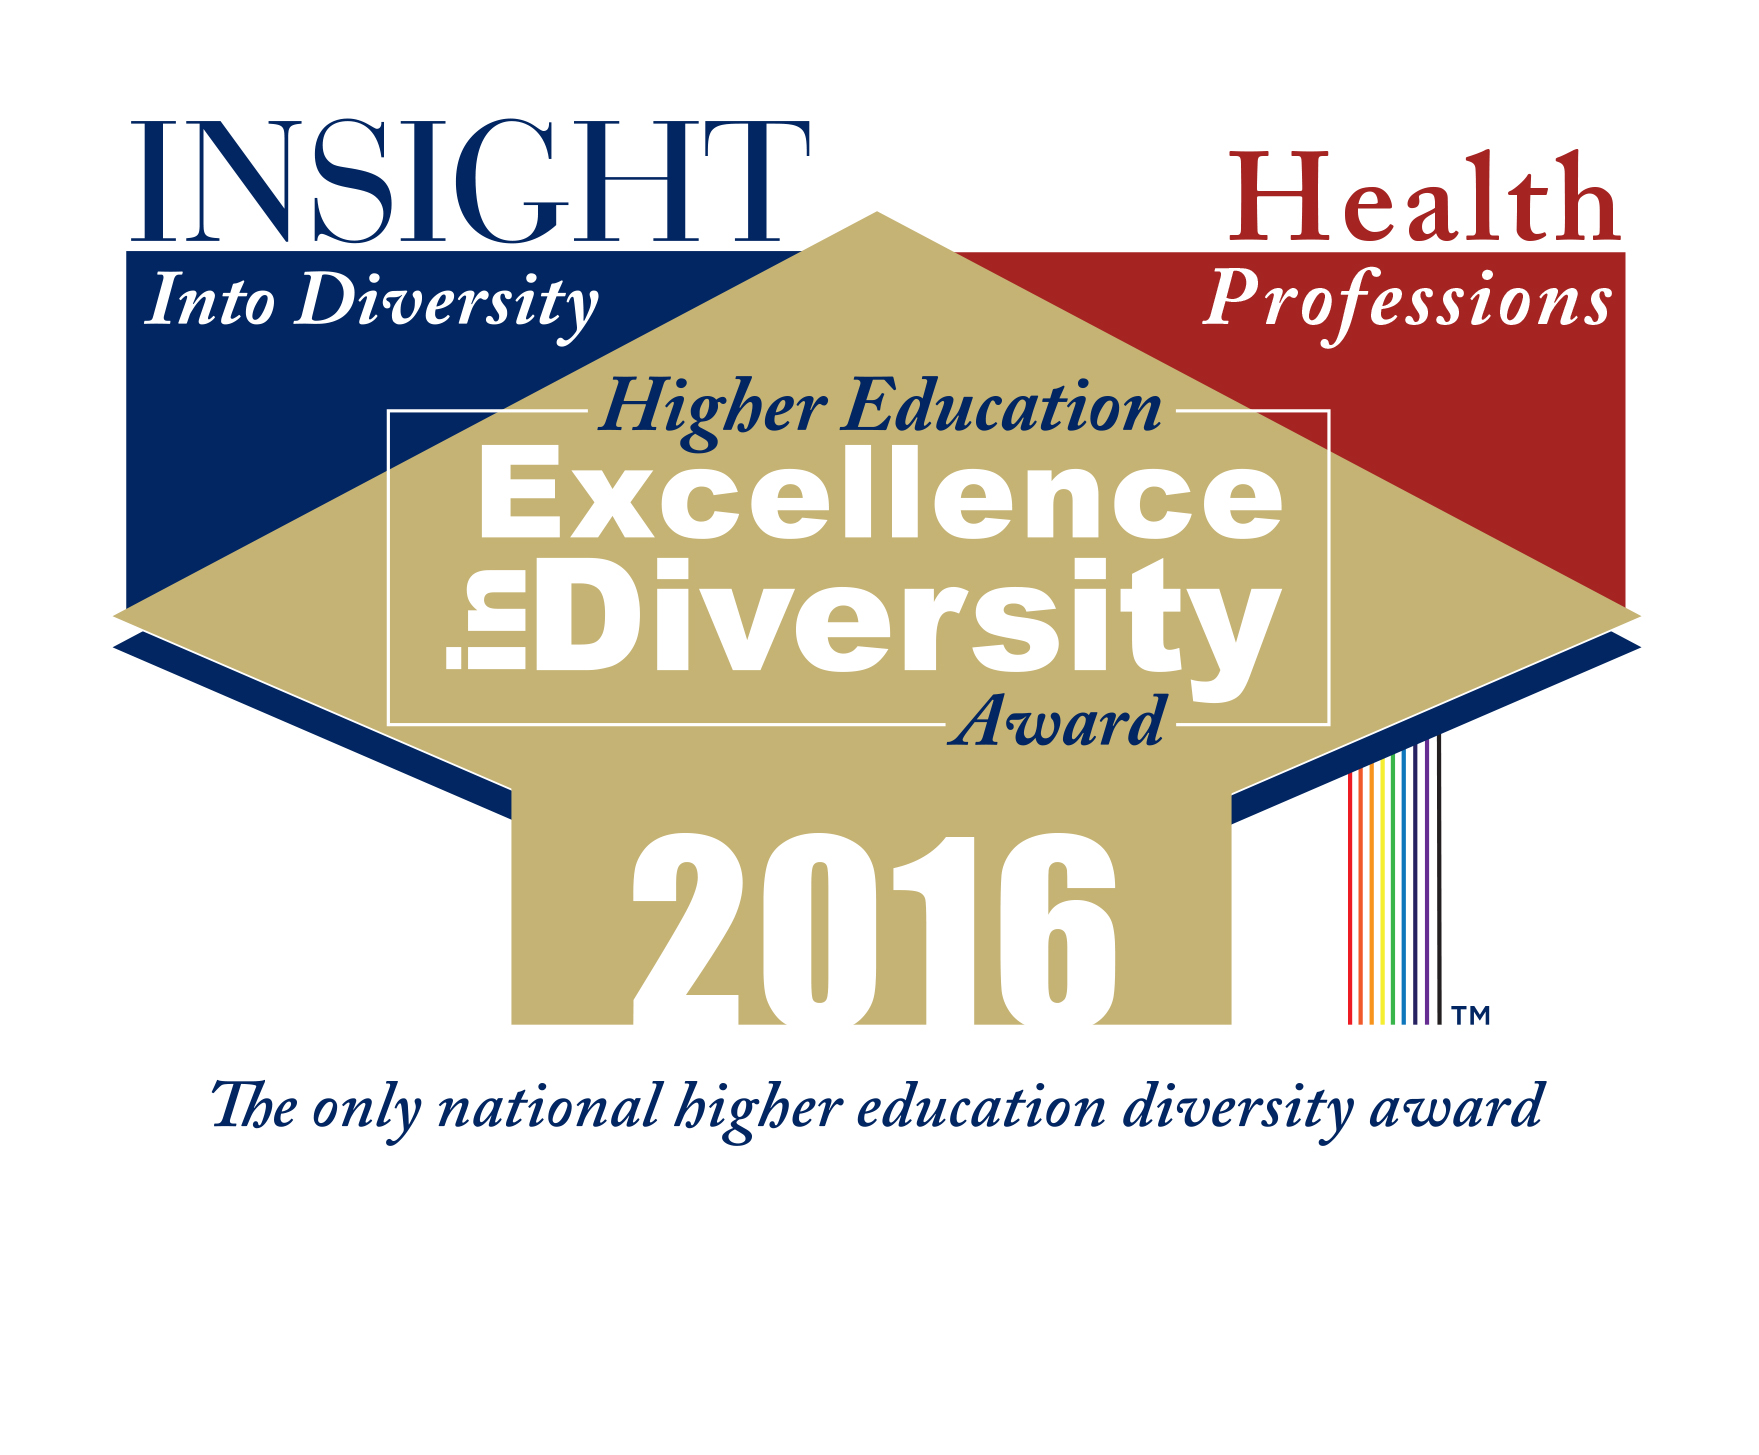 Health Professions Diversity Award Recognizes Inclusion mitment